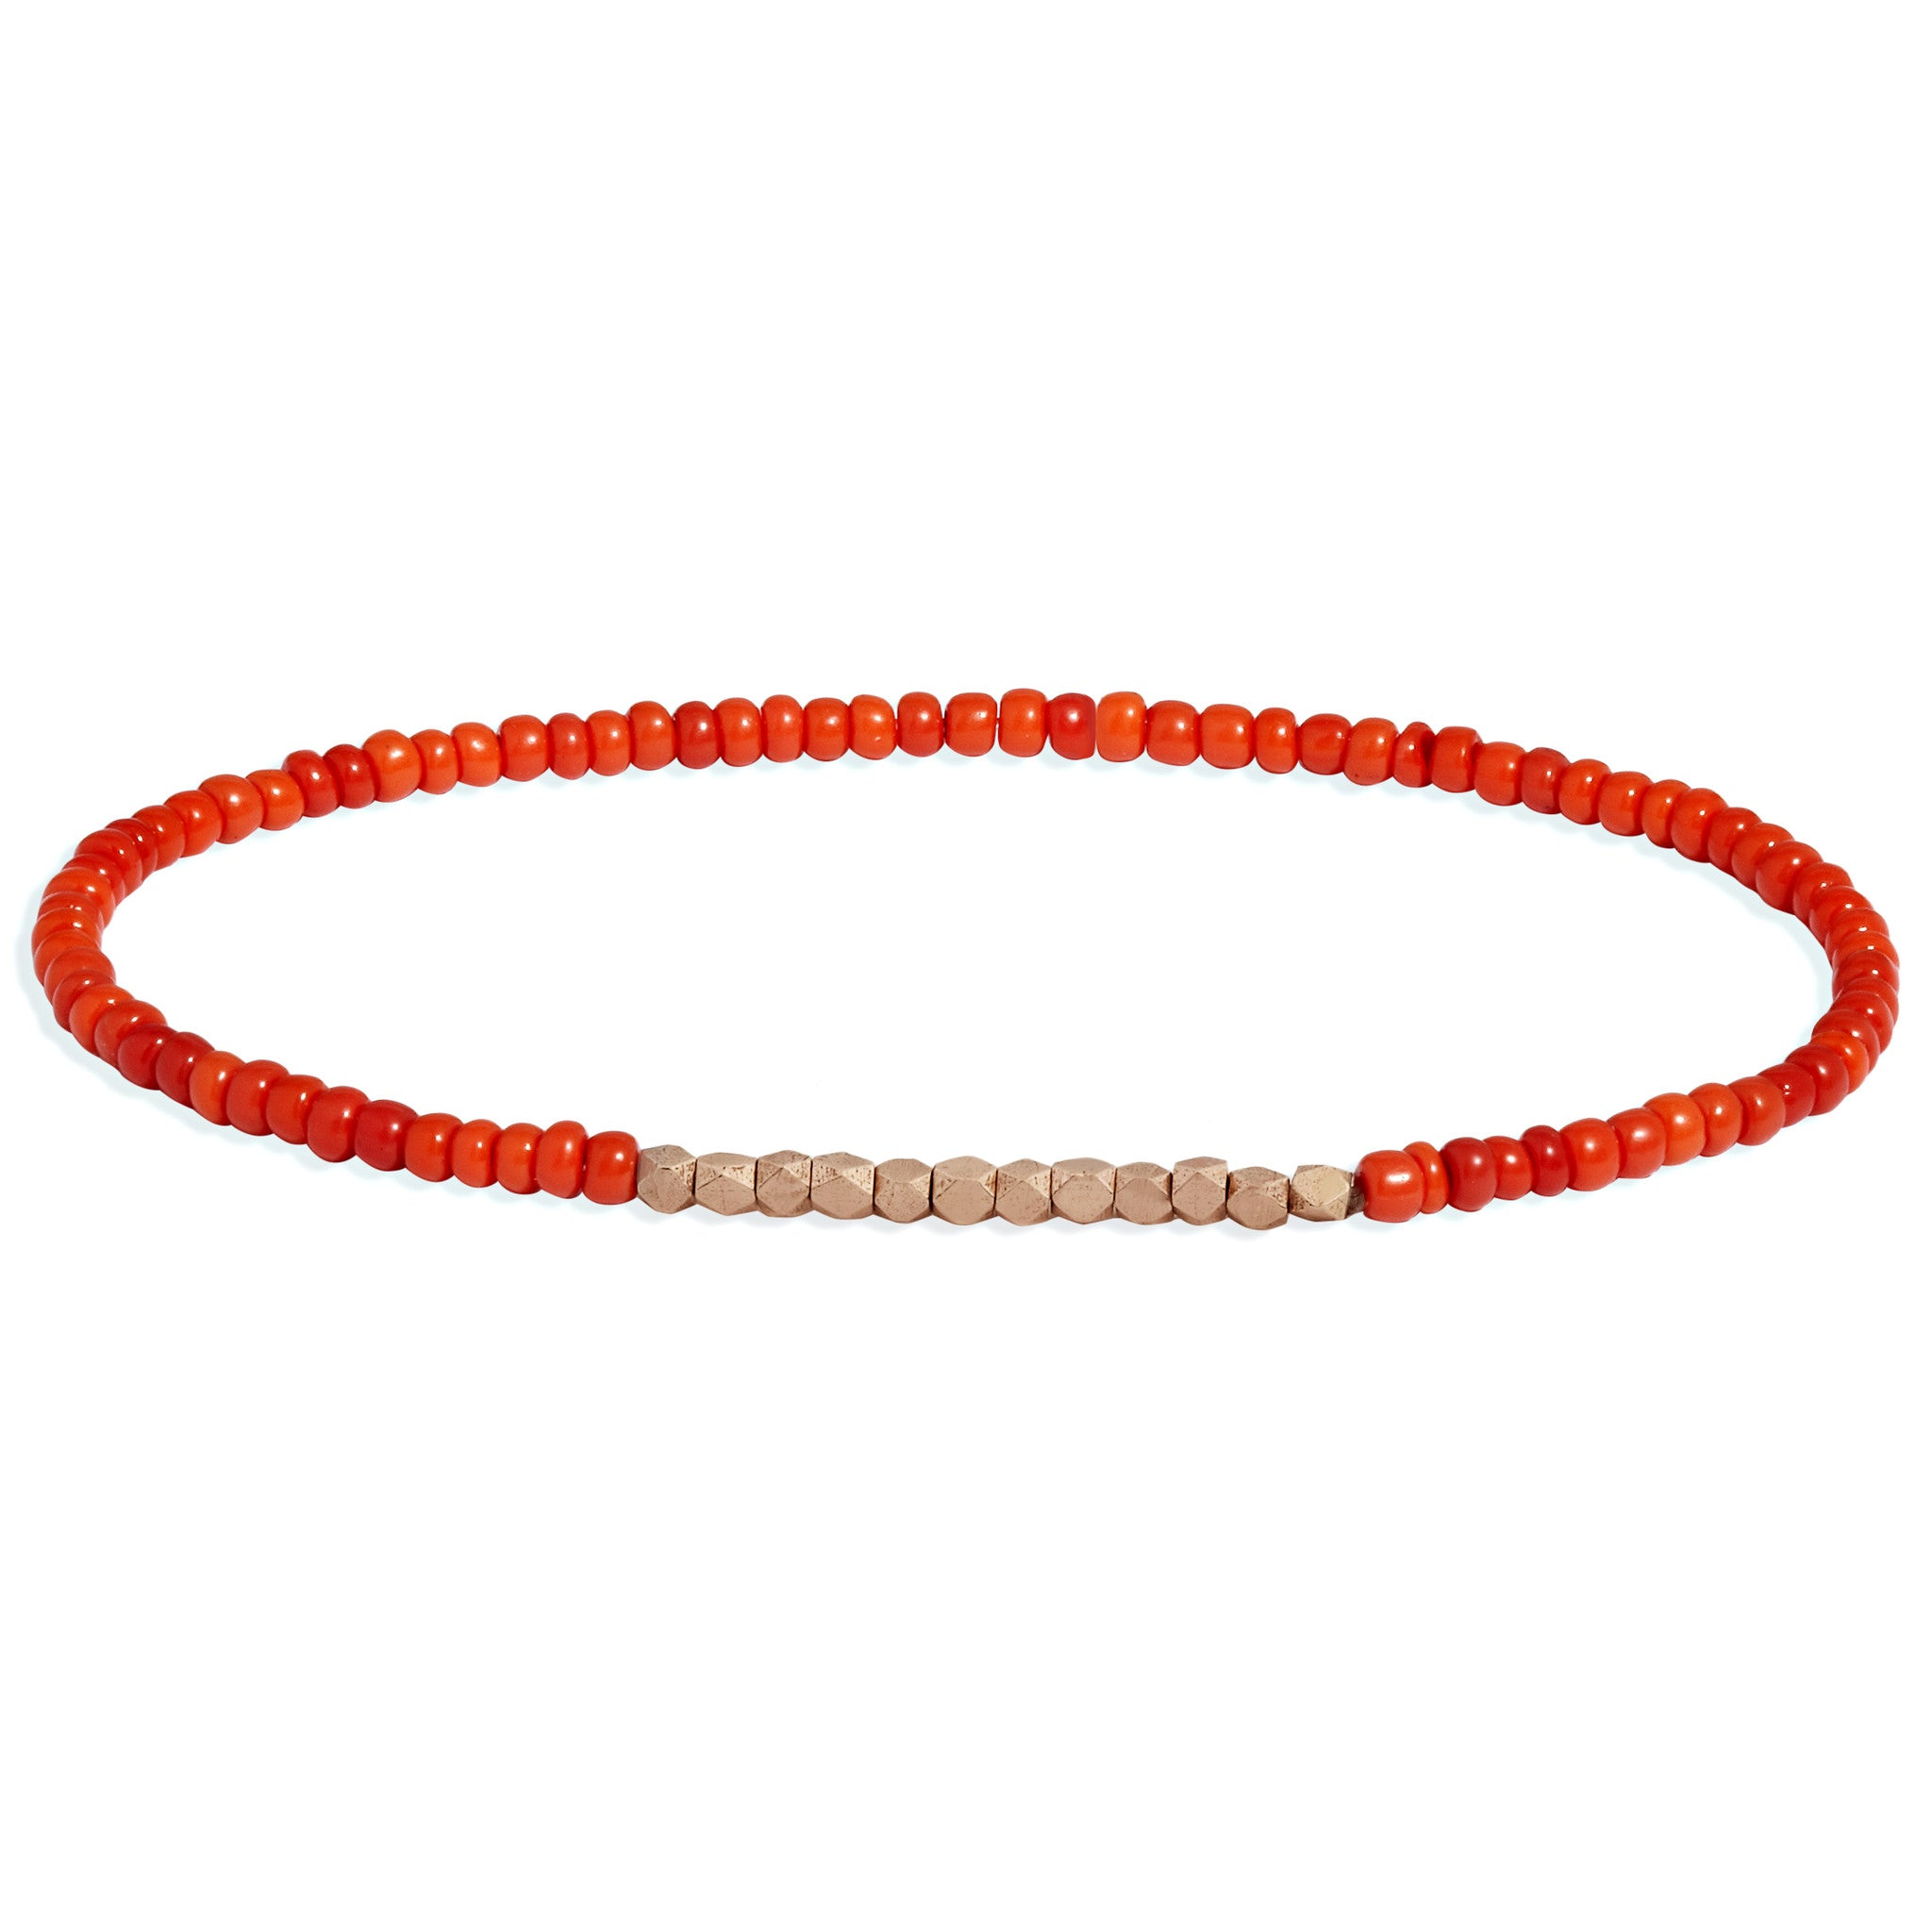 trade bracelet orange collections gold dark anklet beaded with women allison bryan rose bead womens s solid products bracelets